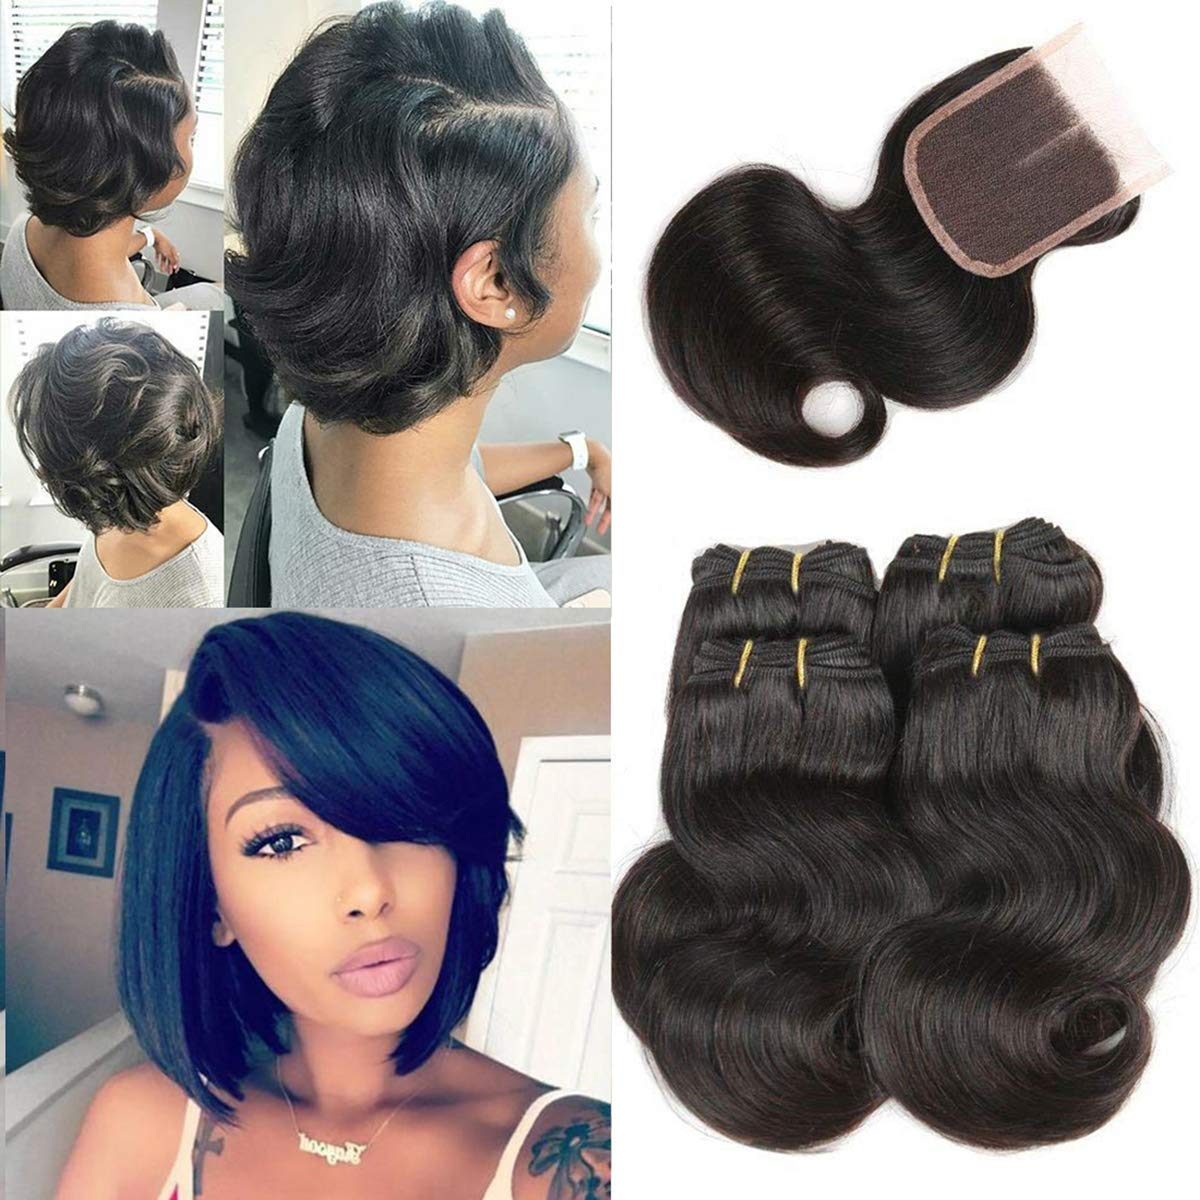 Amazon Com Luxnovolex Body Wave Bundles With Closure Sewn In Wigs Unprocessed Human Hair Weave With Short Brazilian Hair Extensions 230g In Total 8 8 8 8 With 8 Beauty